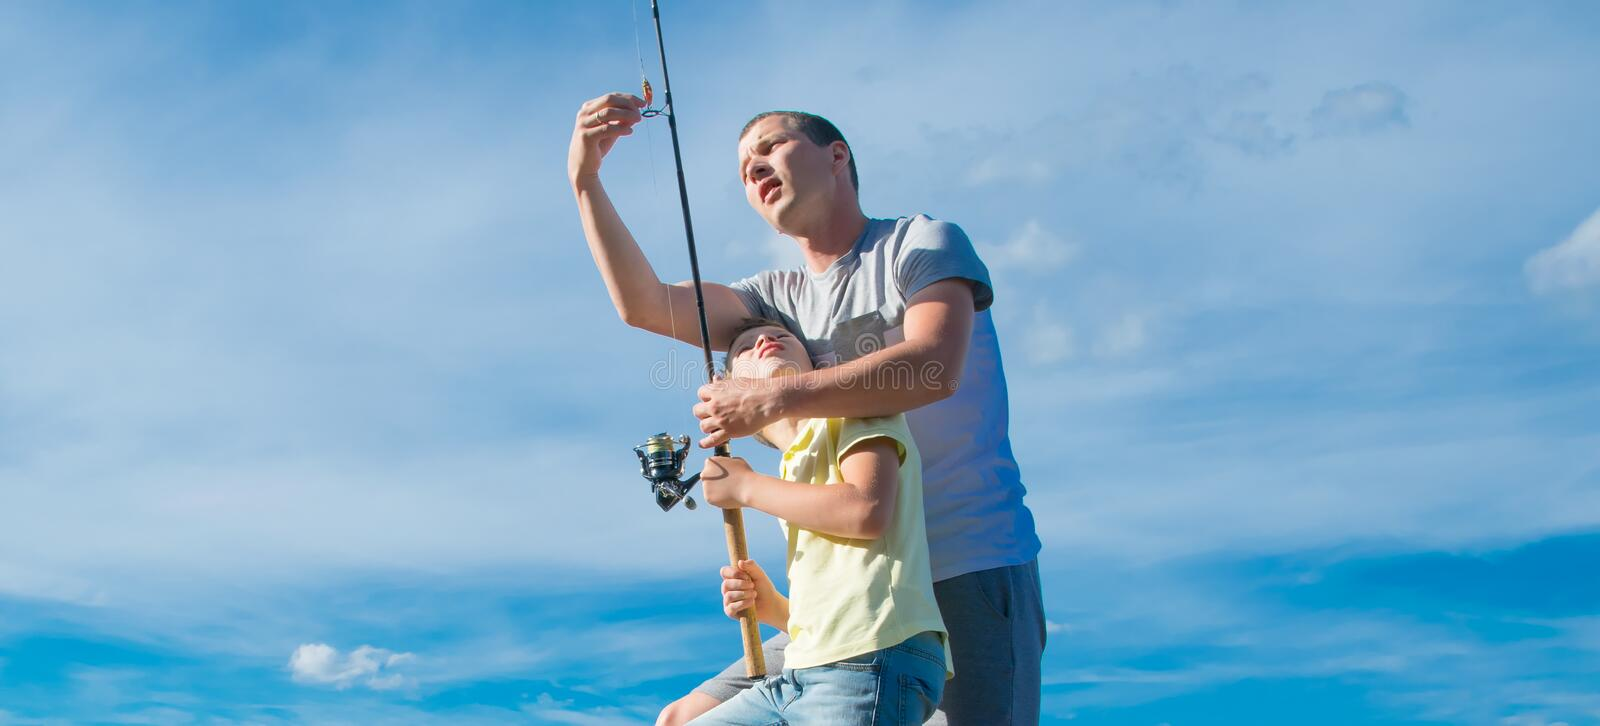 The father shows his son on the pier, how to set up a fishing rod to catch fish, against the blue sky, close-up stock image